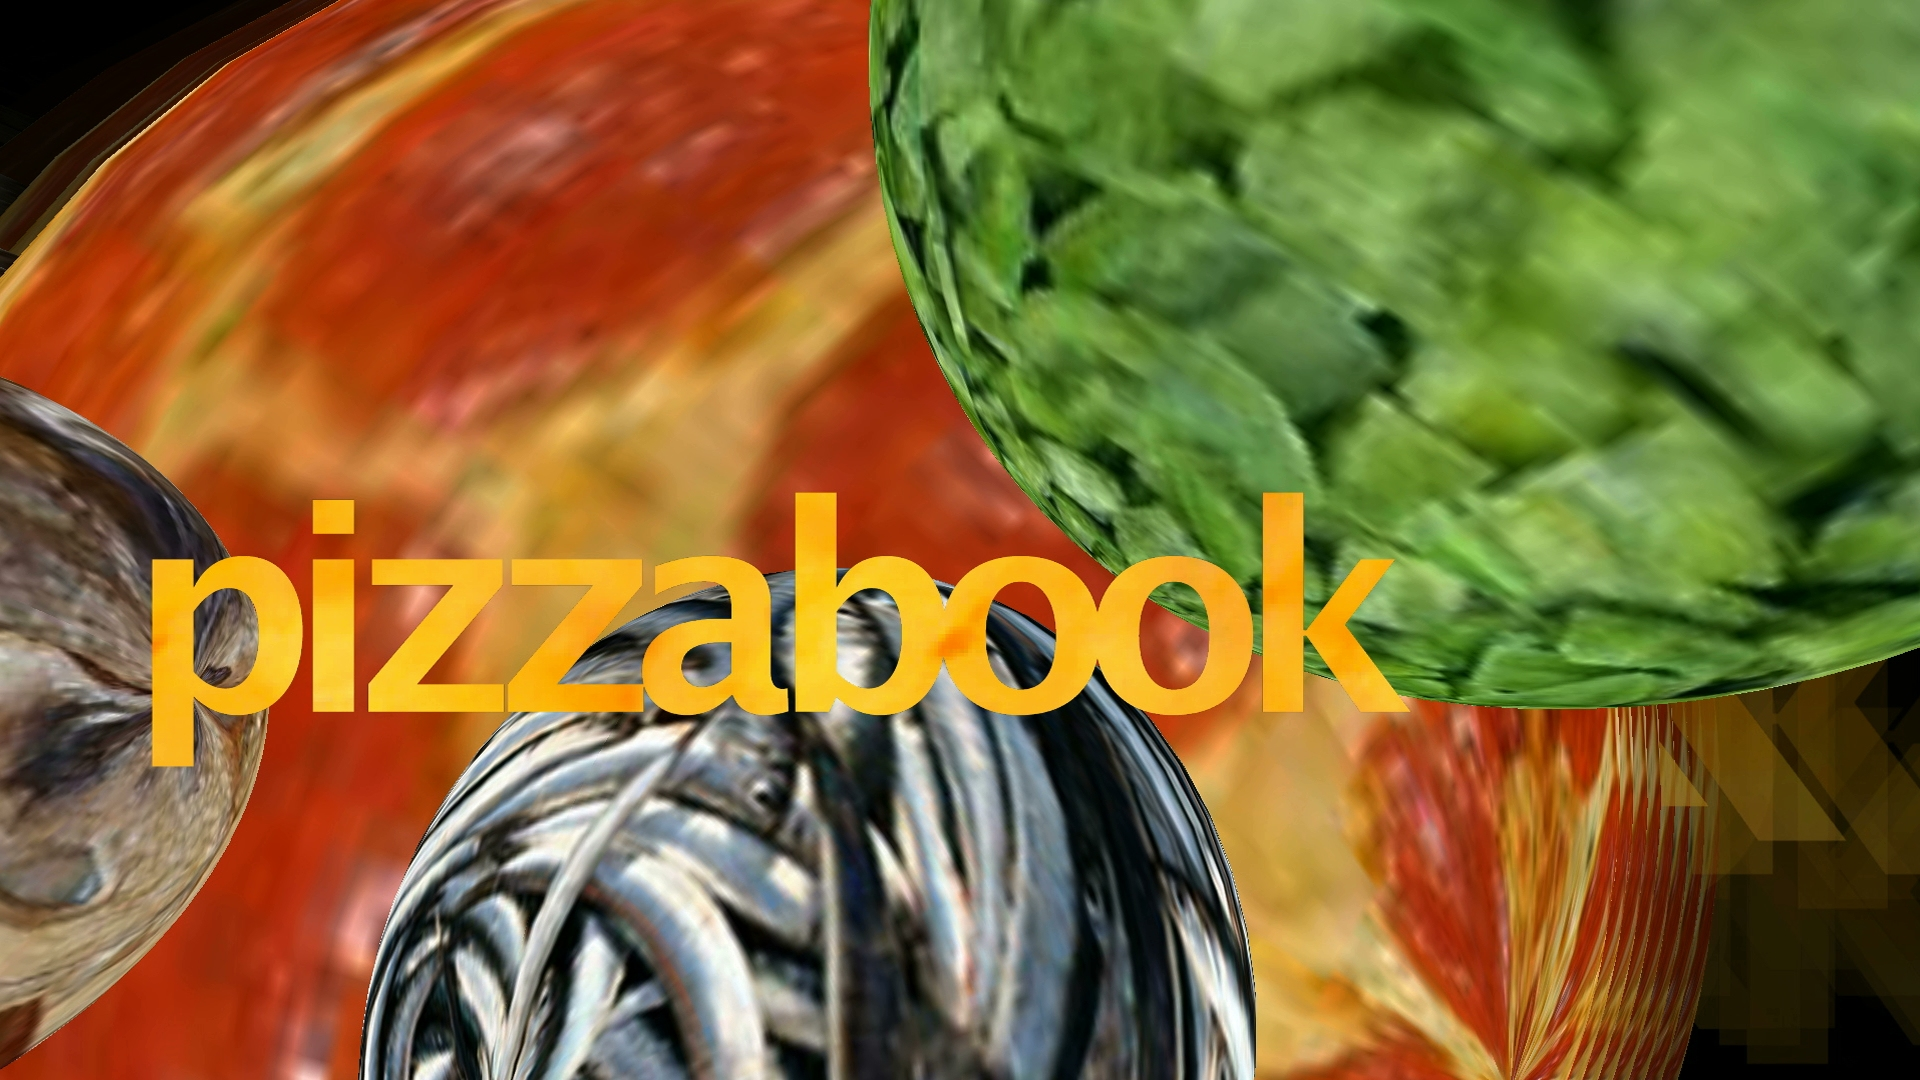 Pizzabook Promo Video 2013